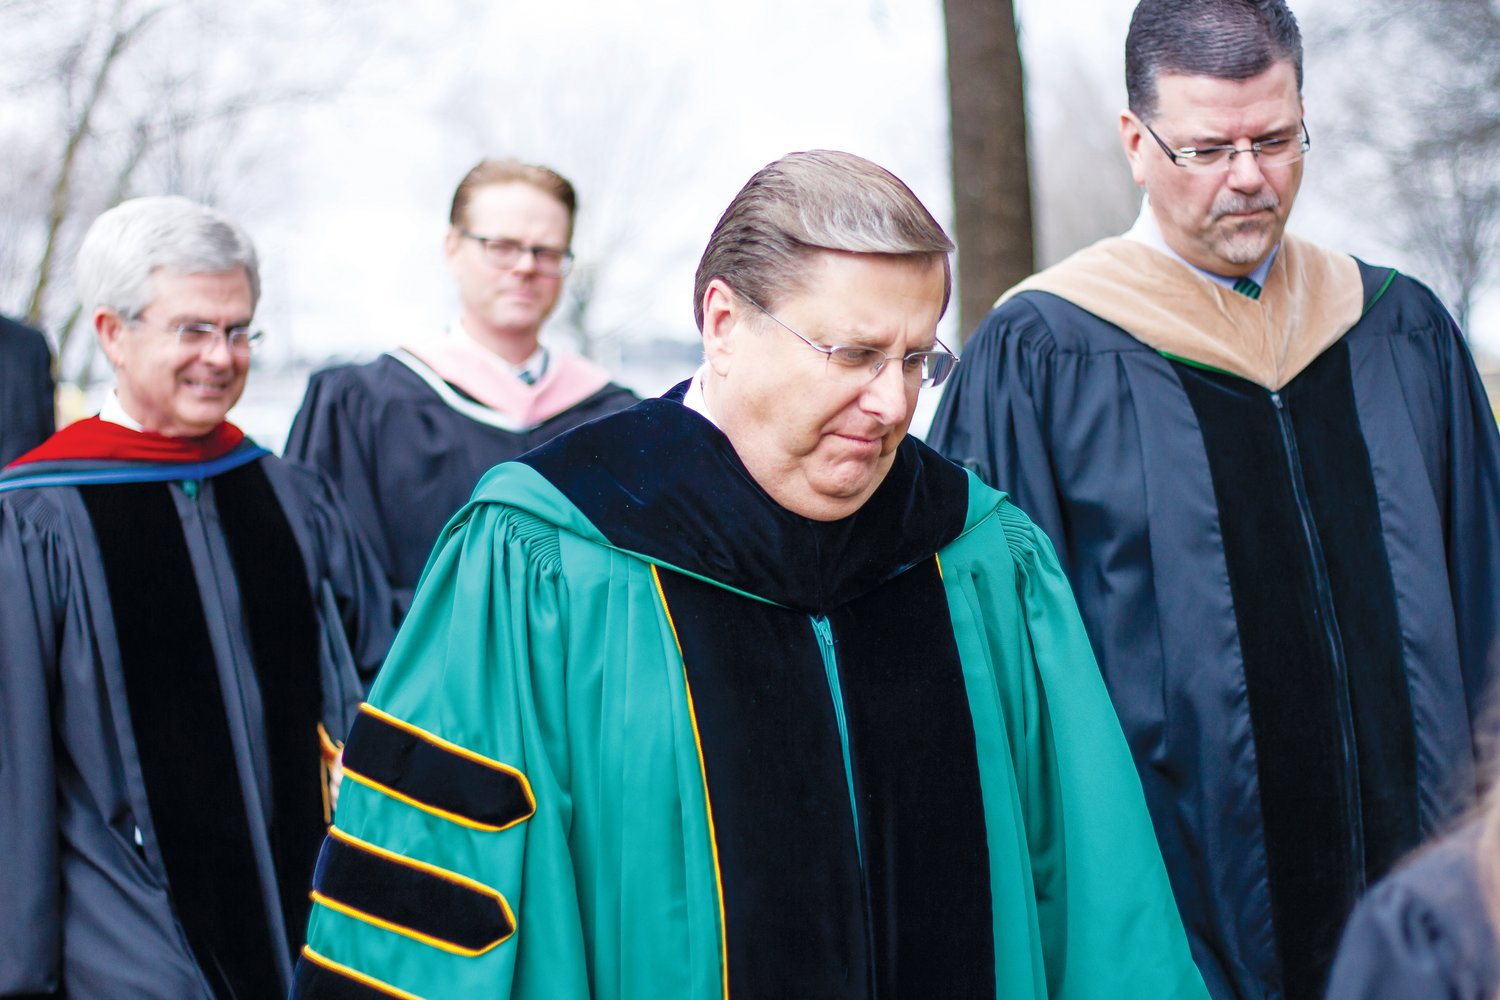 UMO hosts graduation. .Dr. David Poole leads the faculty outside to create a tunnel for the graduates to walk through at a commencement ceremony for the University of Mount Olive.